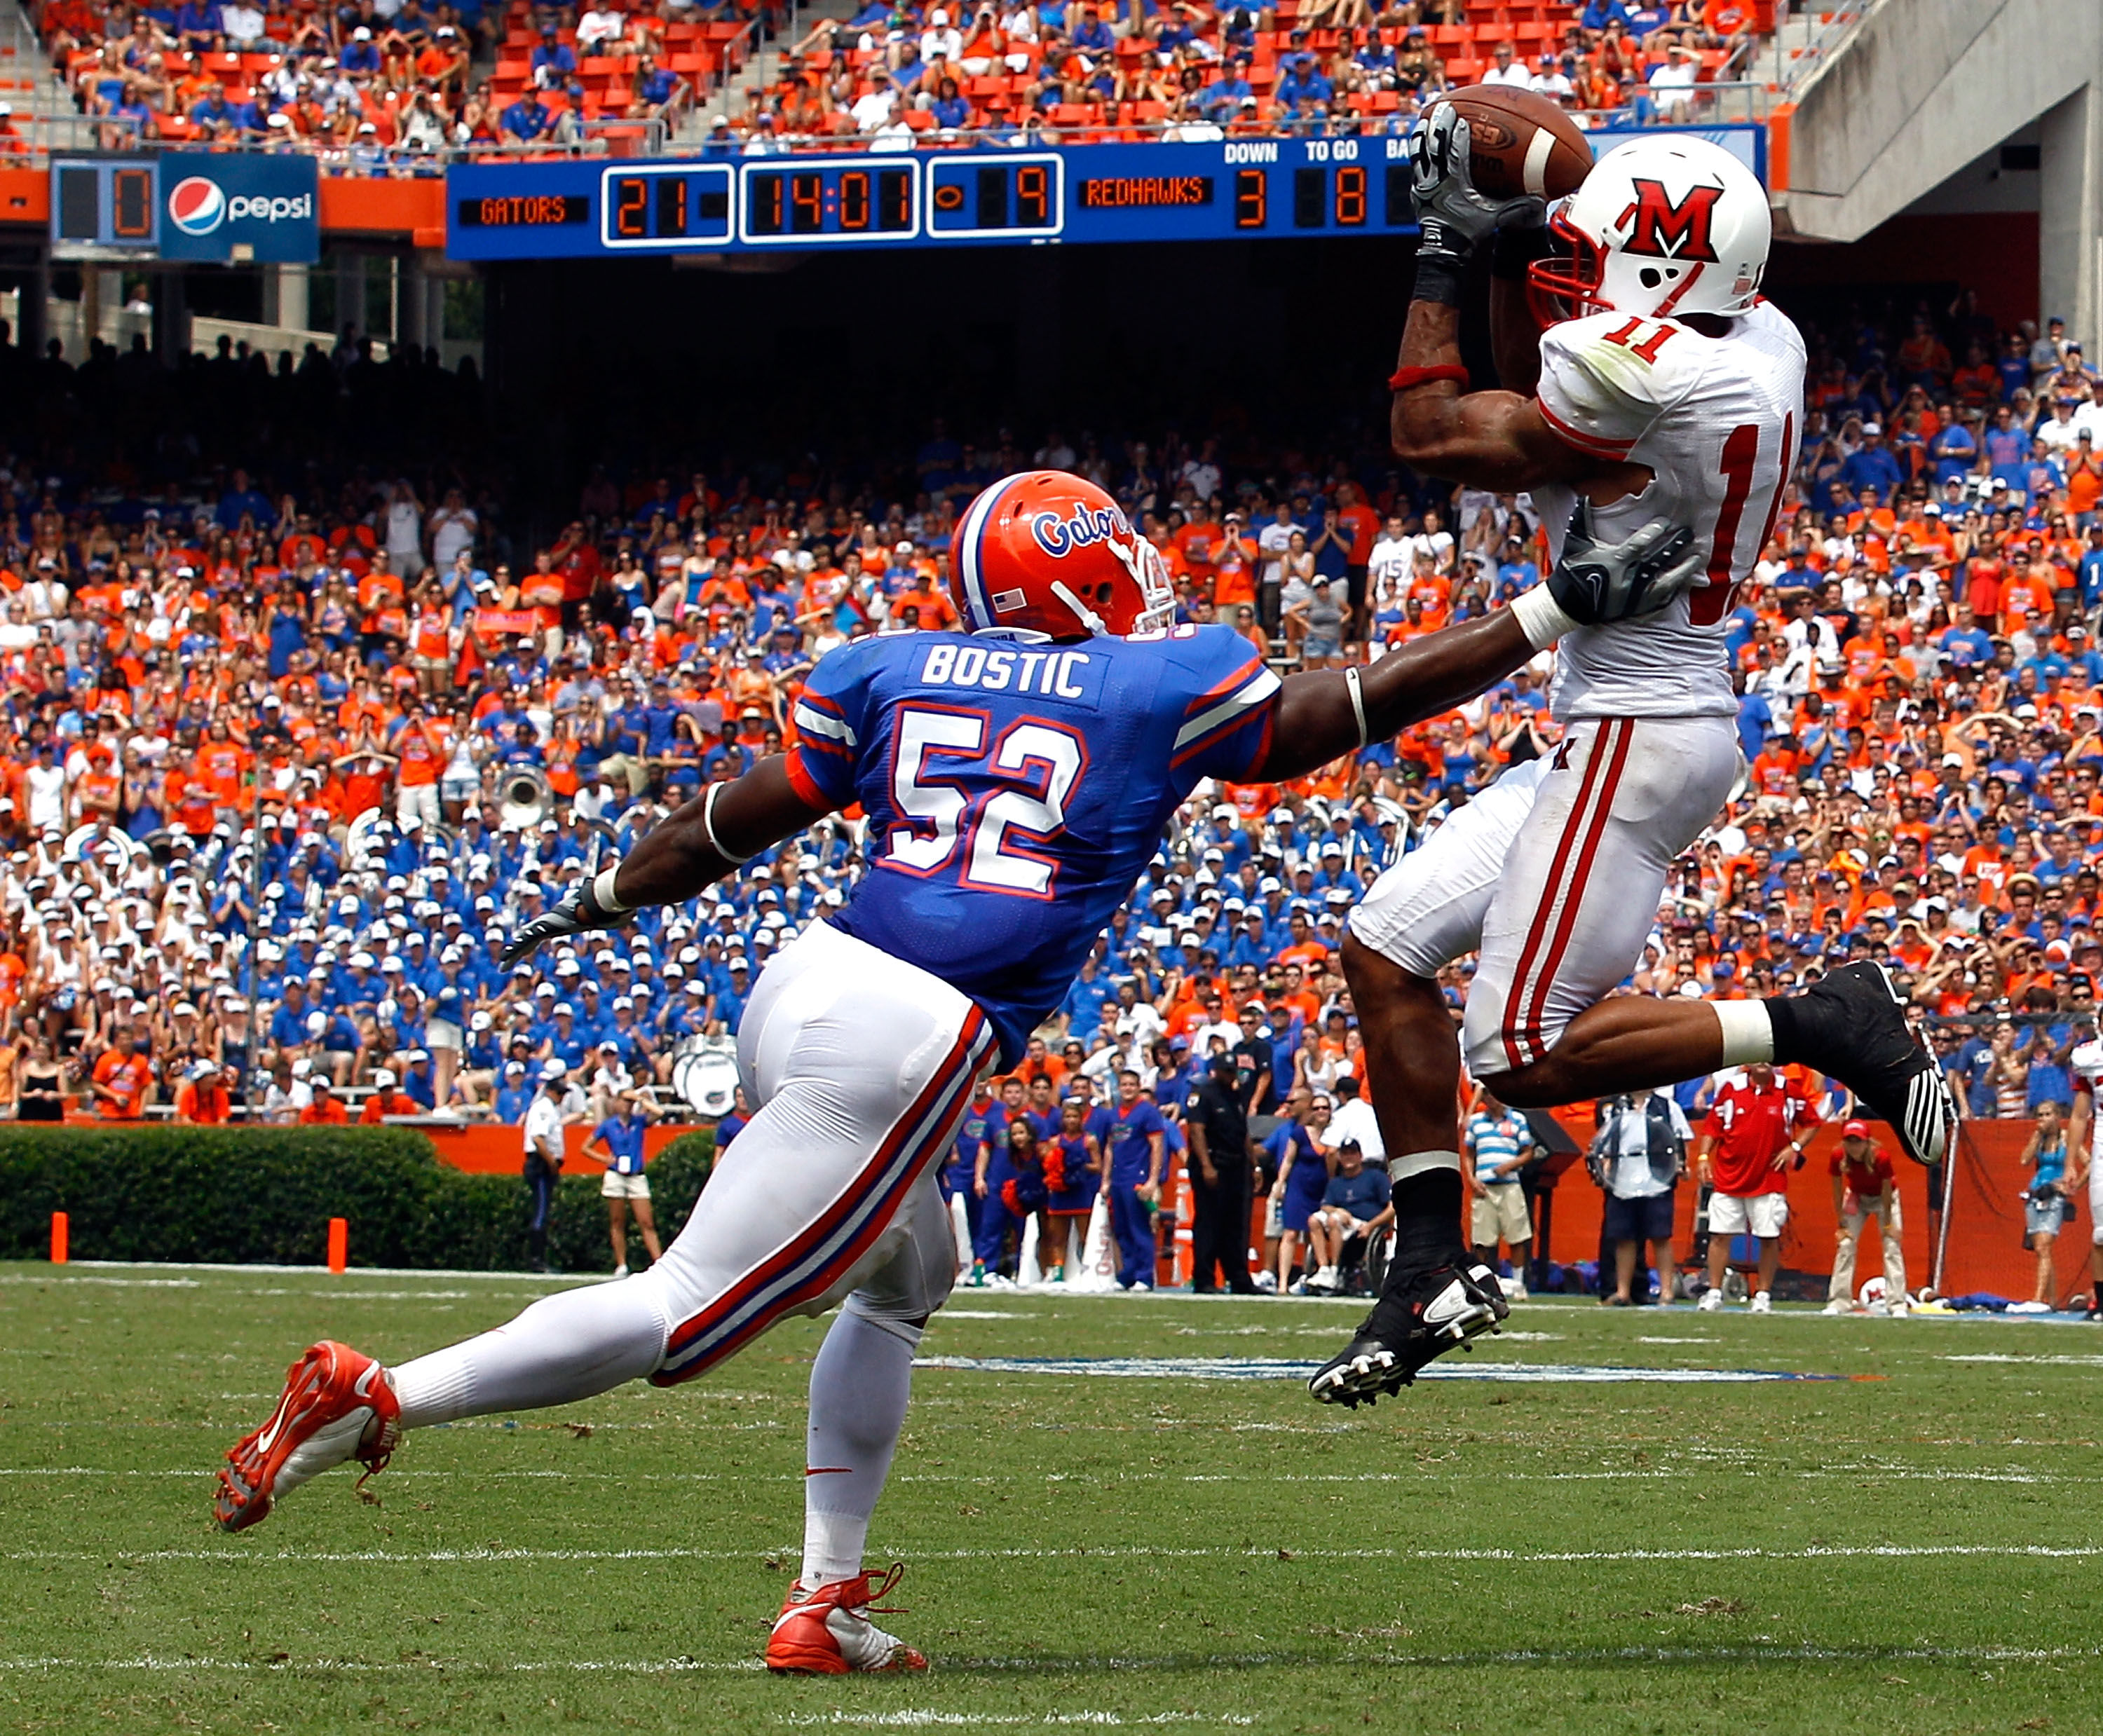 Miami of Ohio held its own against Florida, which is bad news for the highly over-rated Gators.